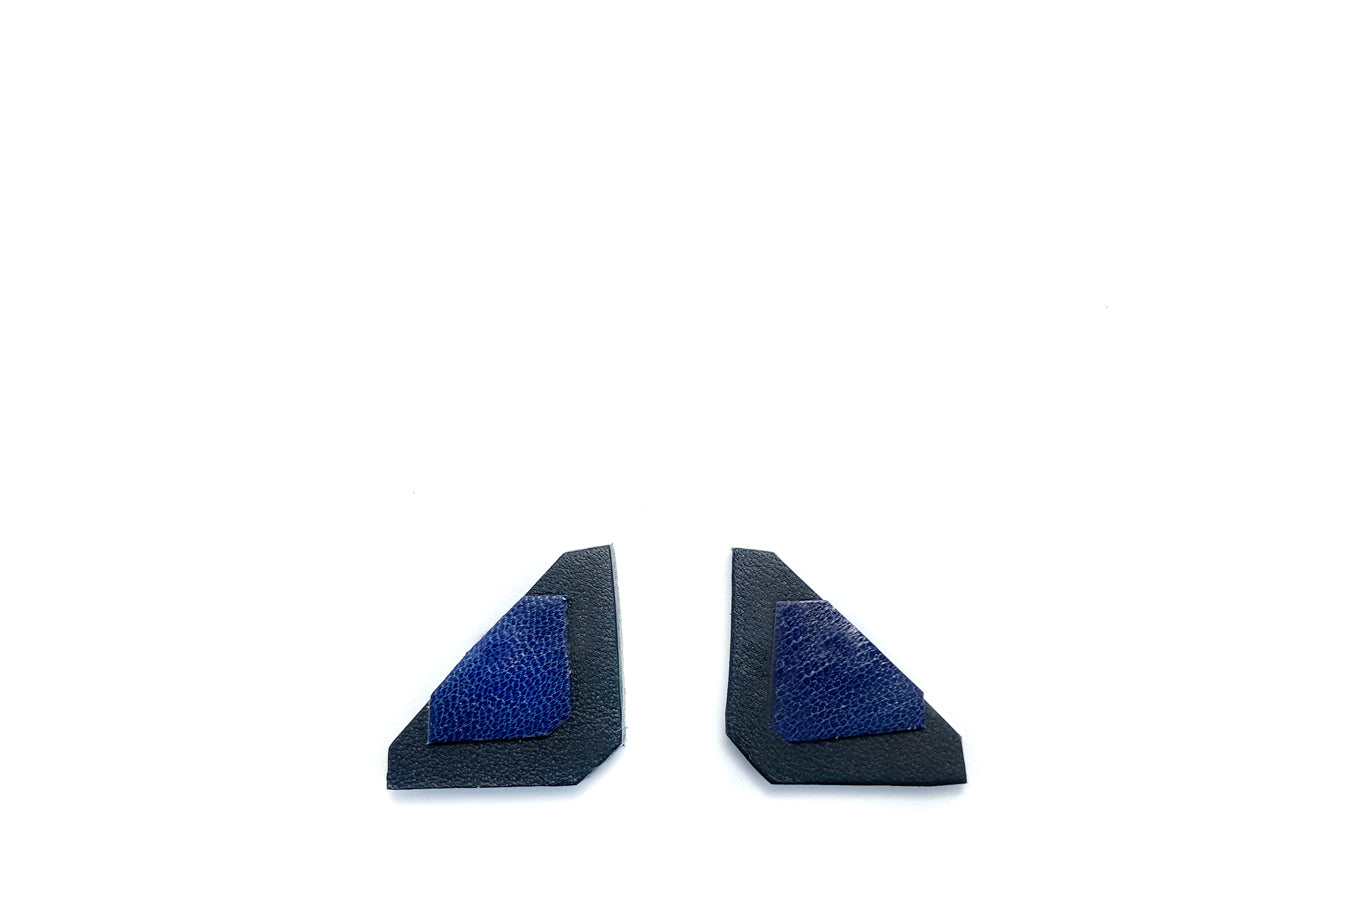 Blue & Black Asci Earrings